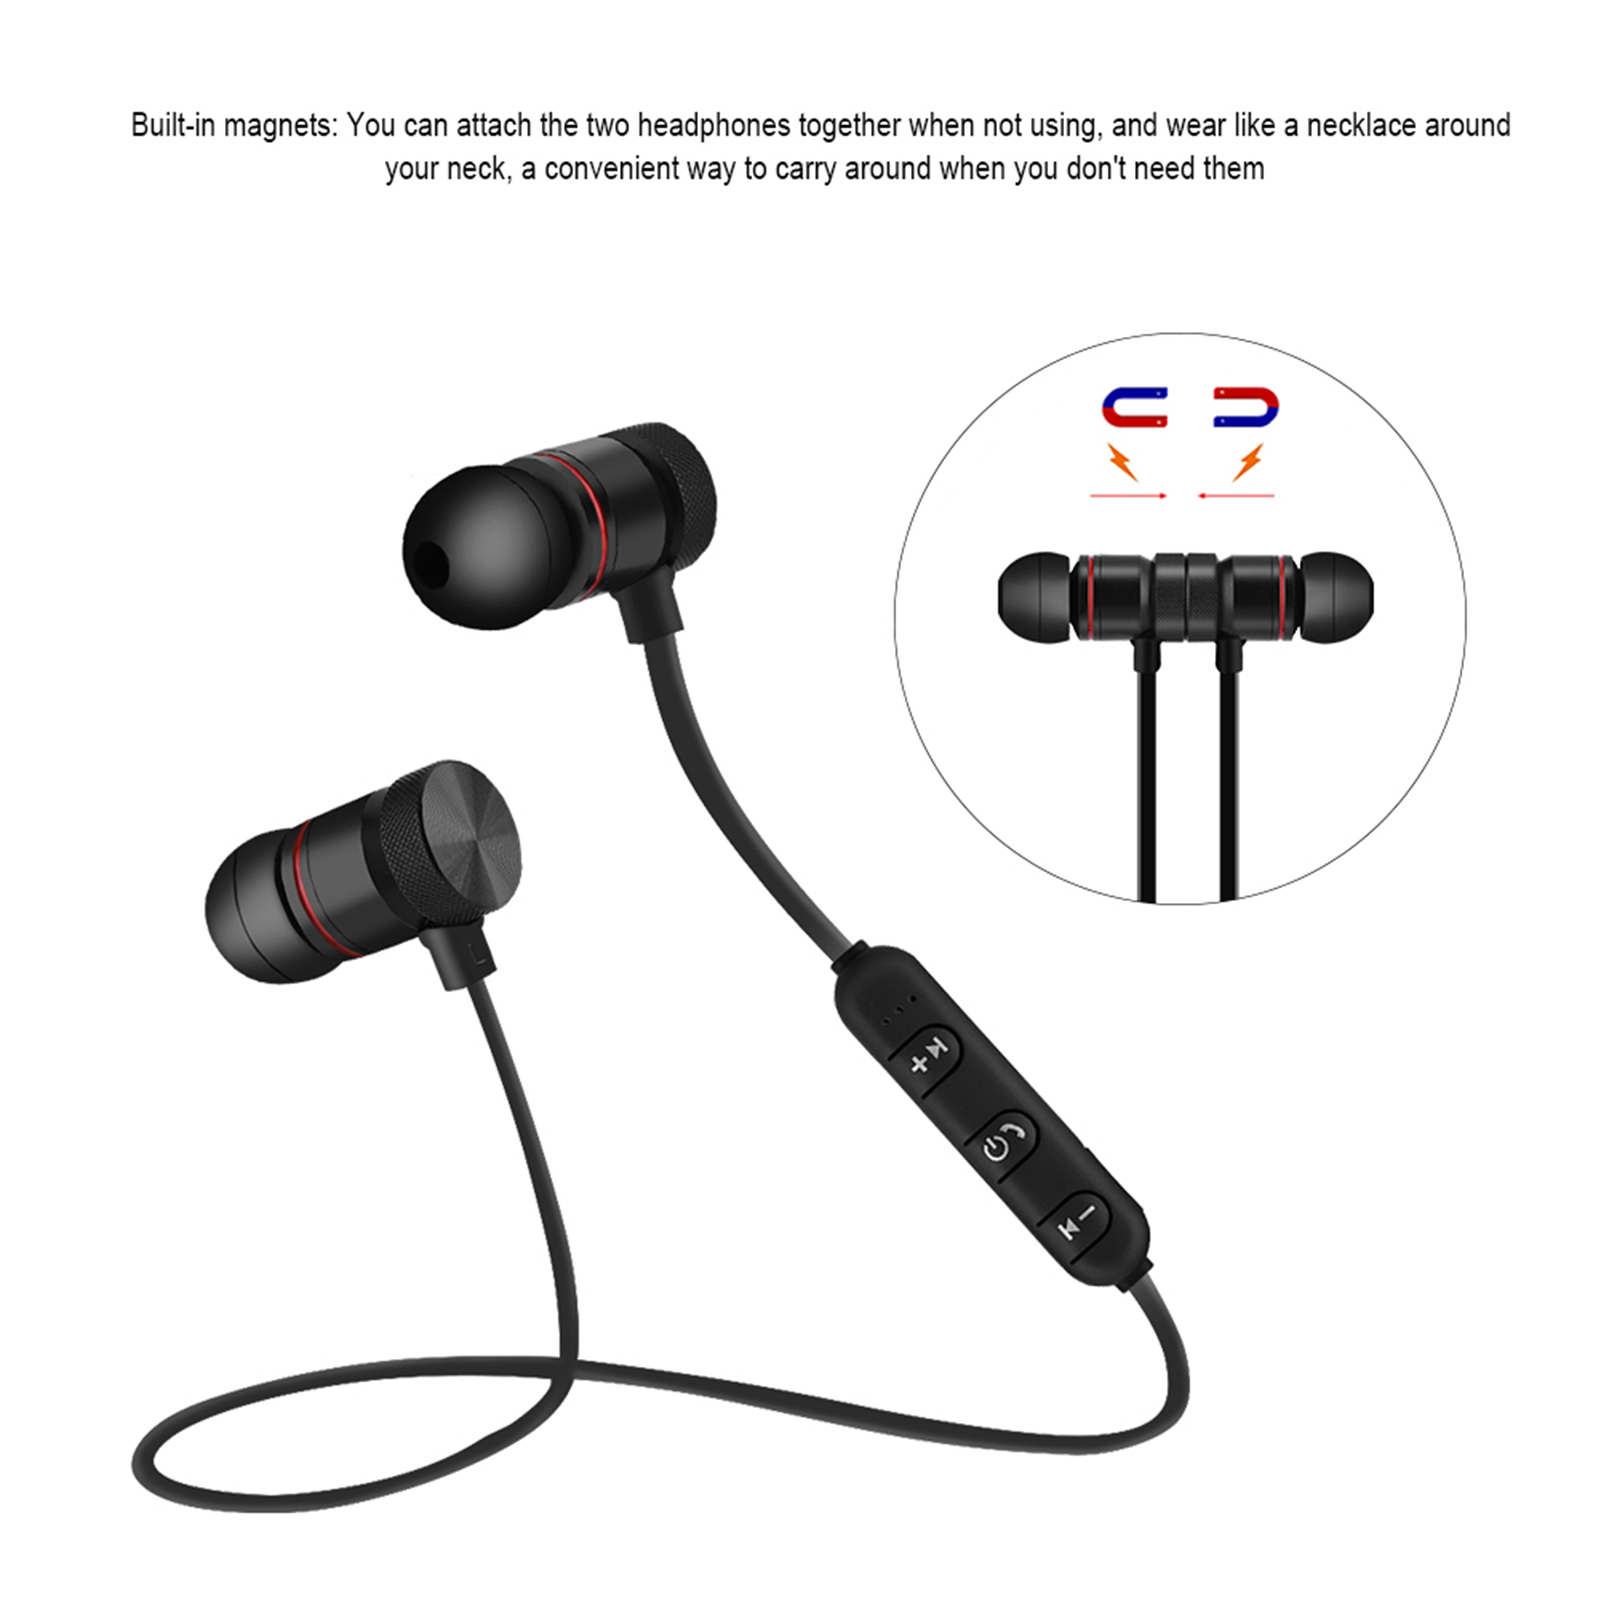 magnetique casque bluetooth couteur sans fil sport mains libres st r o ebay. Black Bedroom Furniture Sets. Home Design Ideas